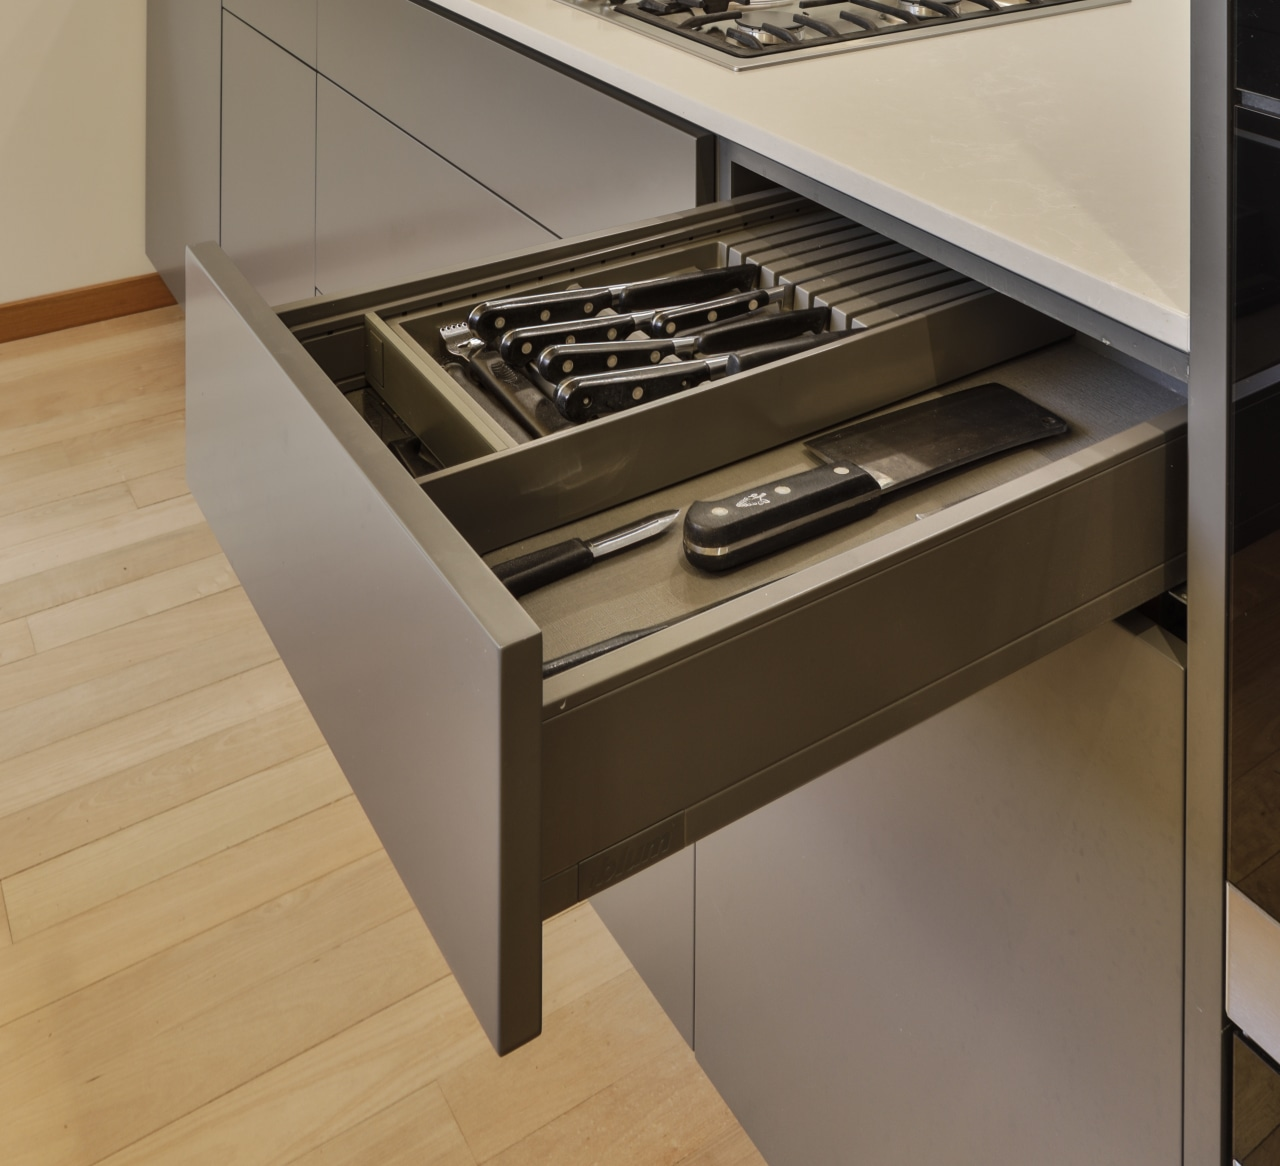 The kitchen's Blum Legrabox drawers are as smooth